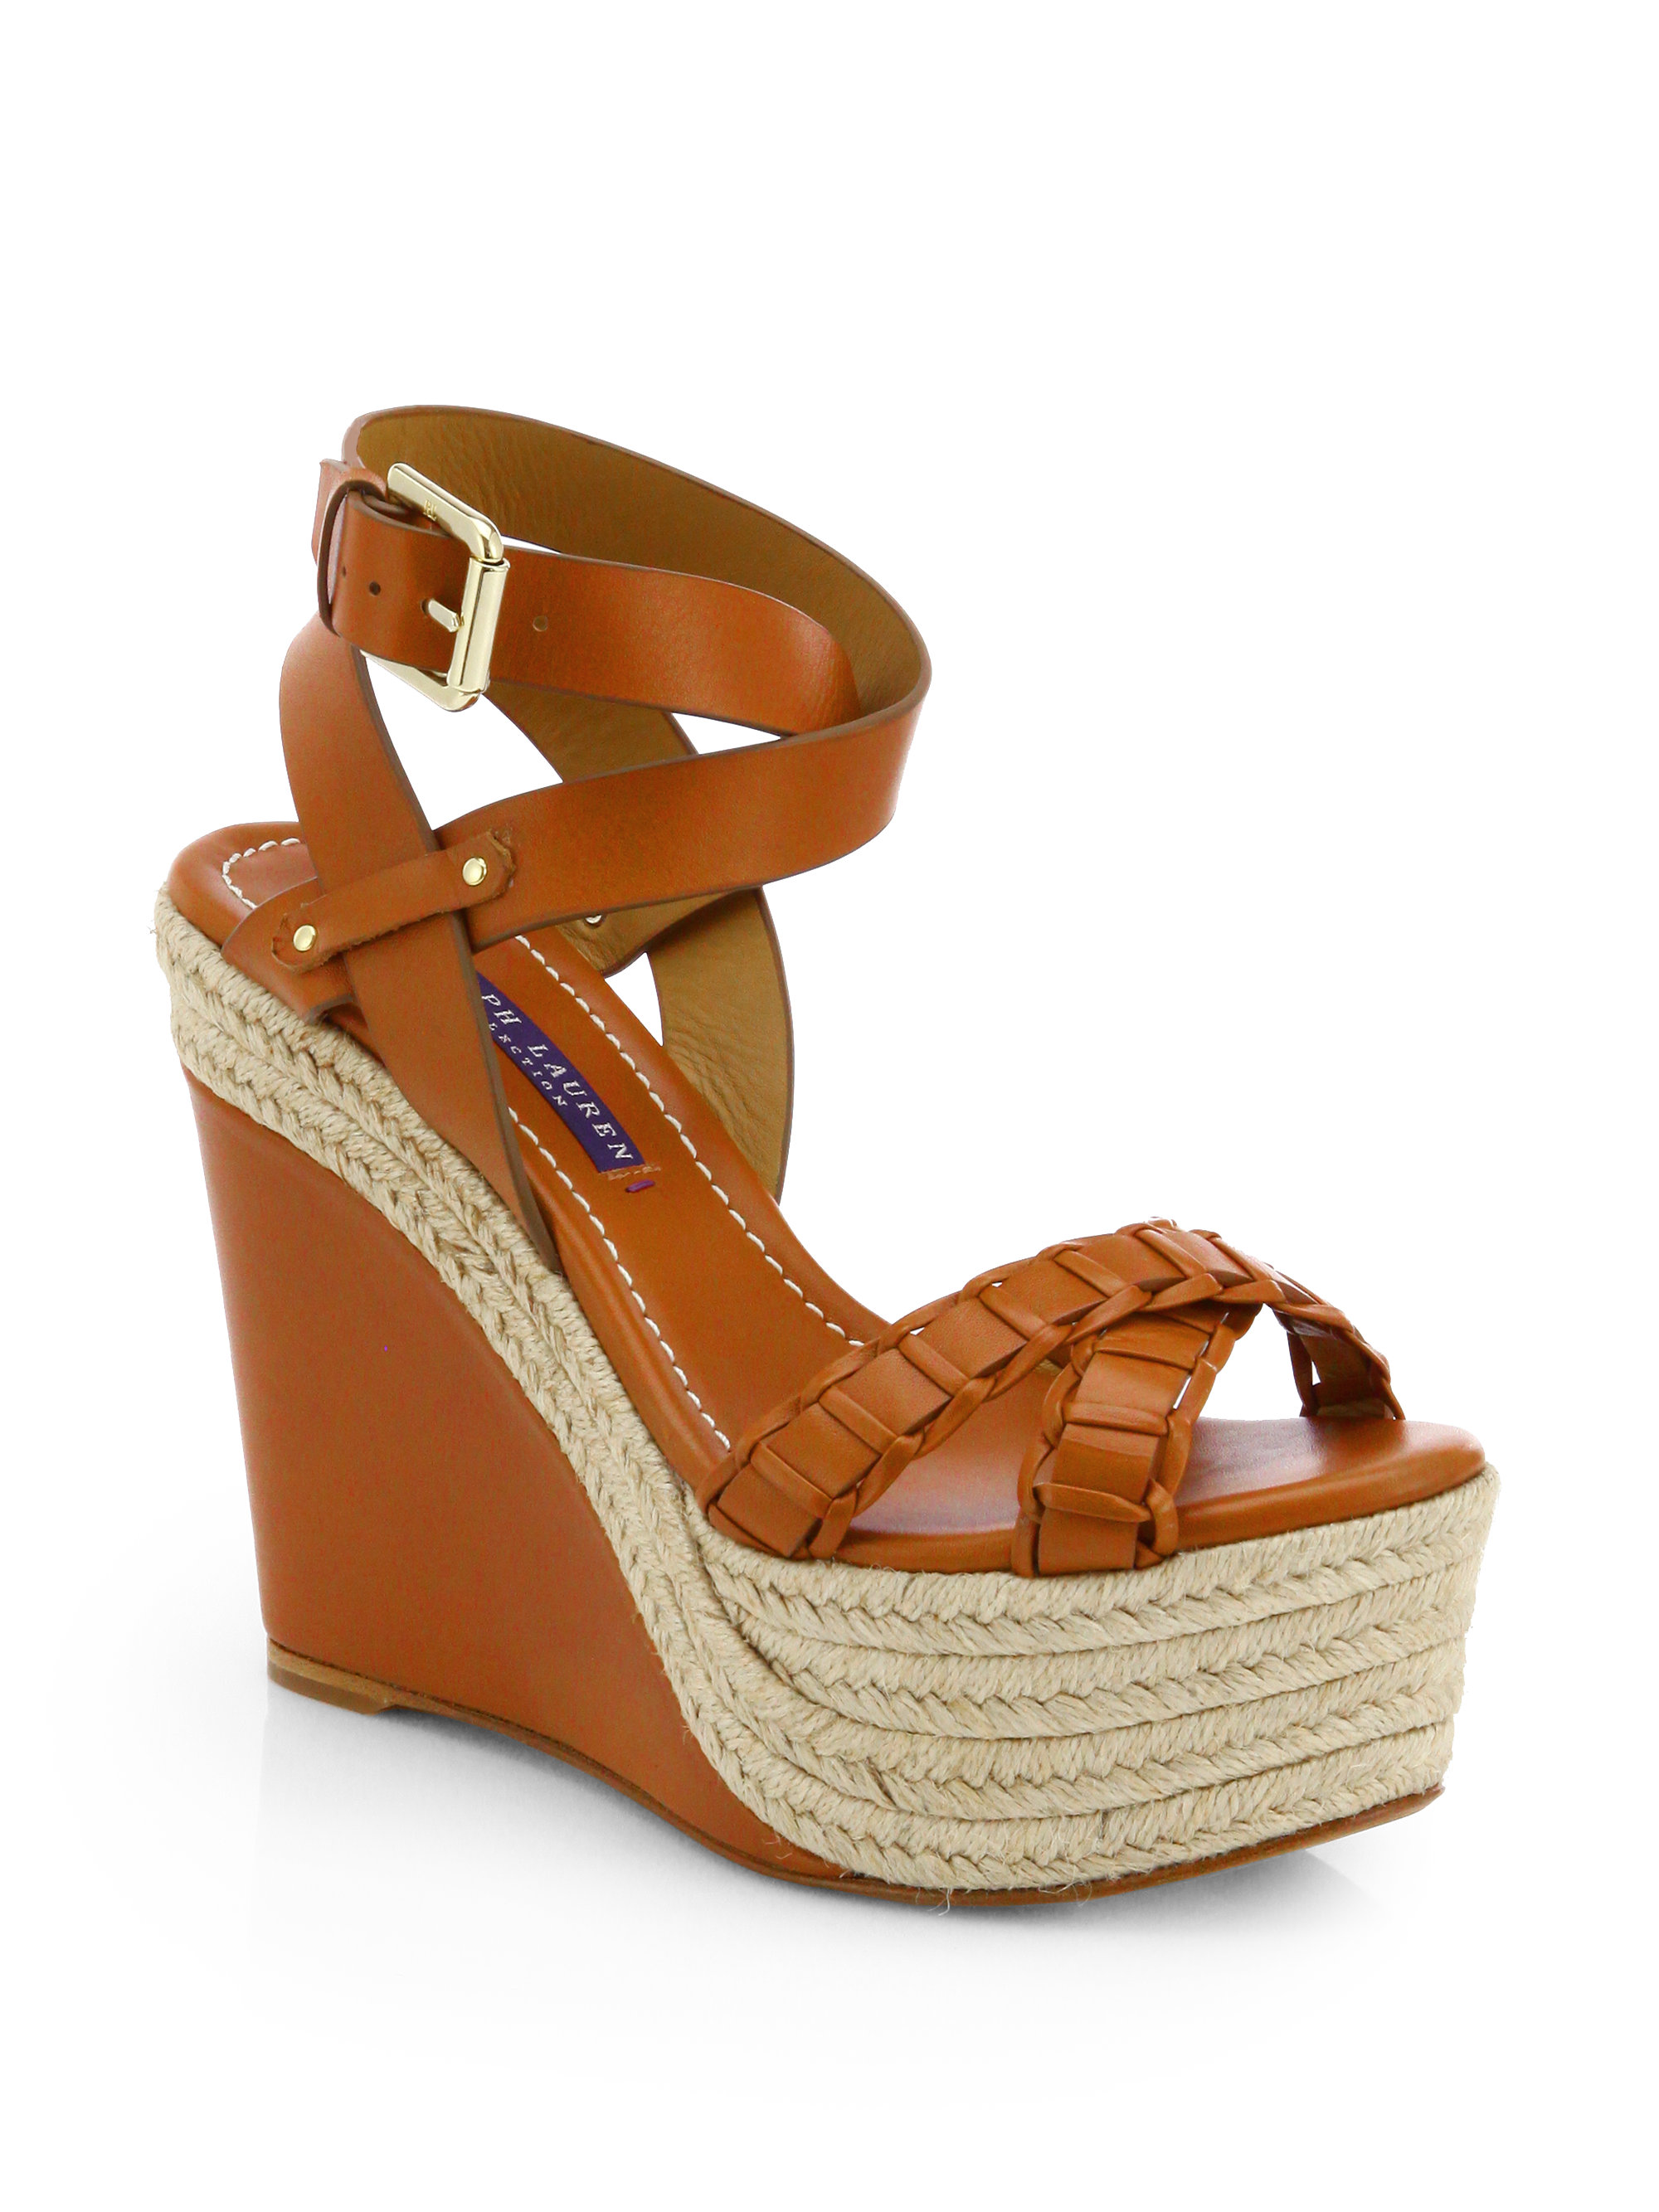 Ralph Lauren Collection Espadrille Wedge Sandals clearance collections x0kkLB6j1